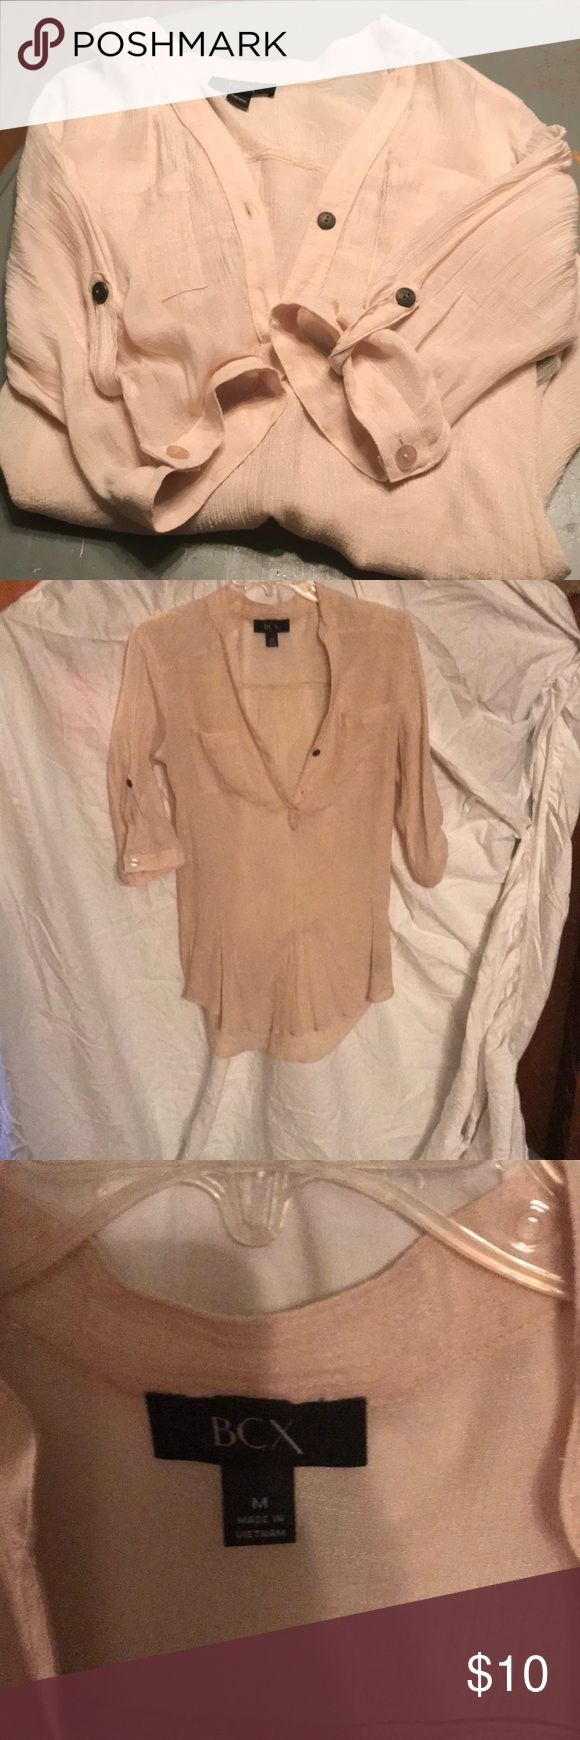 Blouse cream women's top Really beautiful 2 button up  cream blouse loose fit . size medium cream color.. just bought but doesn't fit me well.. BCX Tops Button Down Shirts